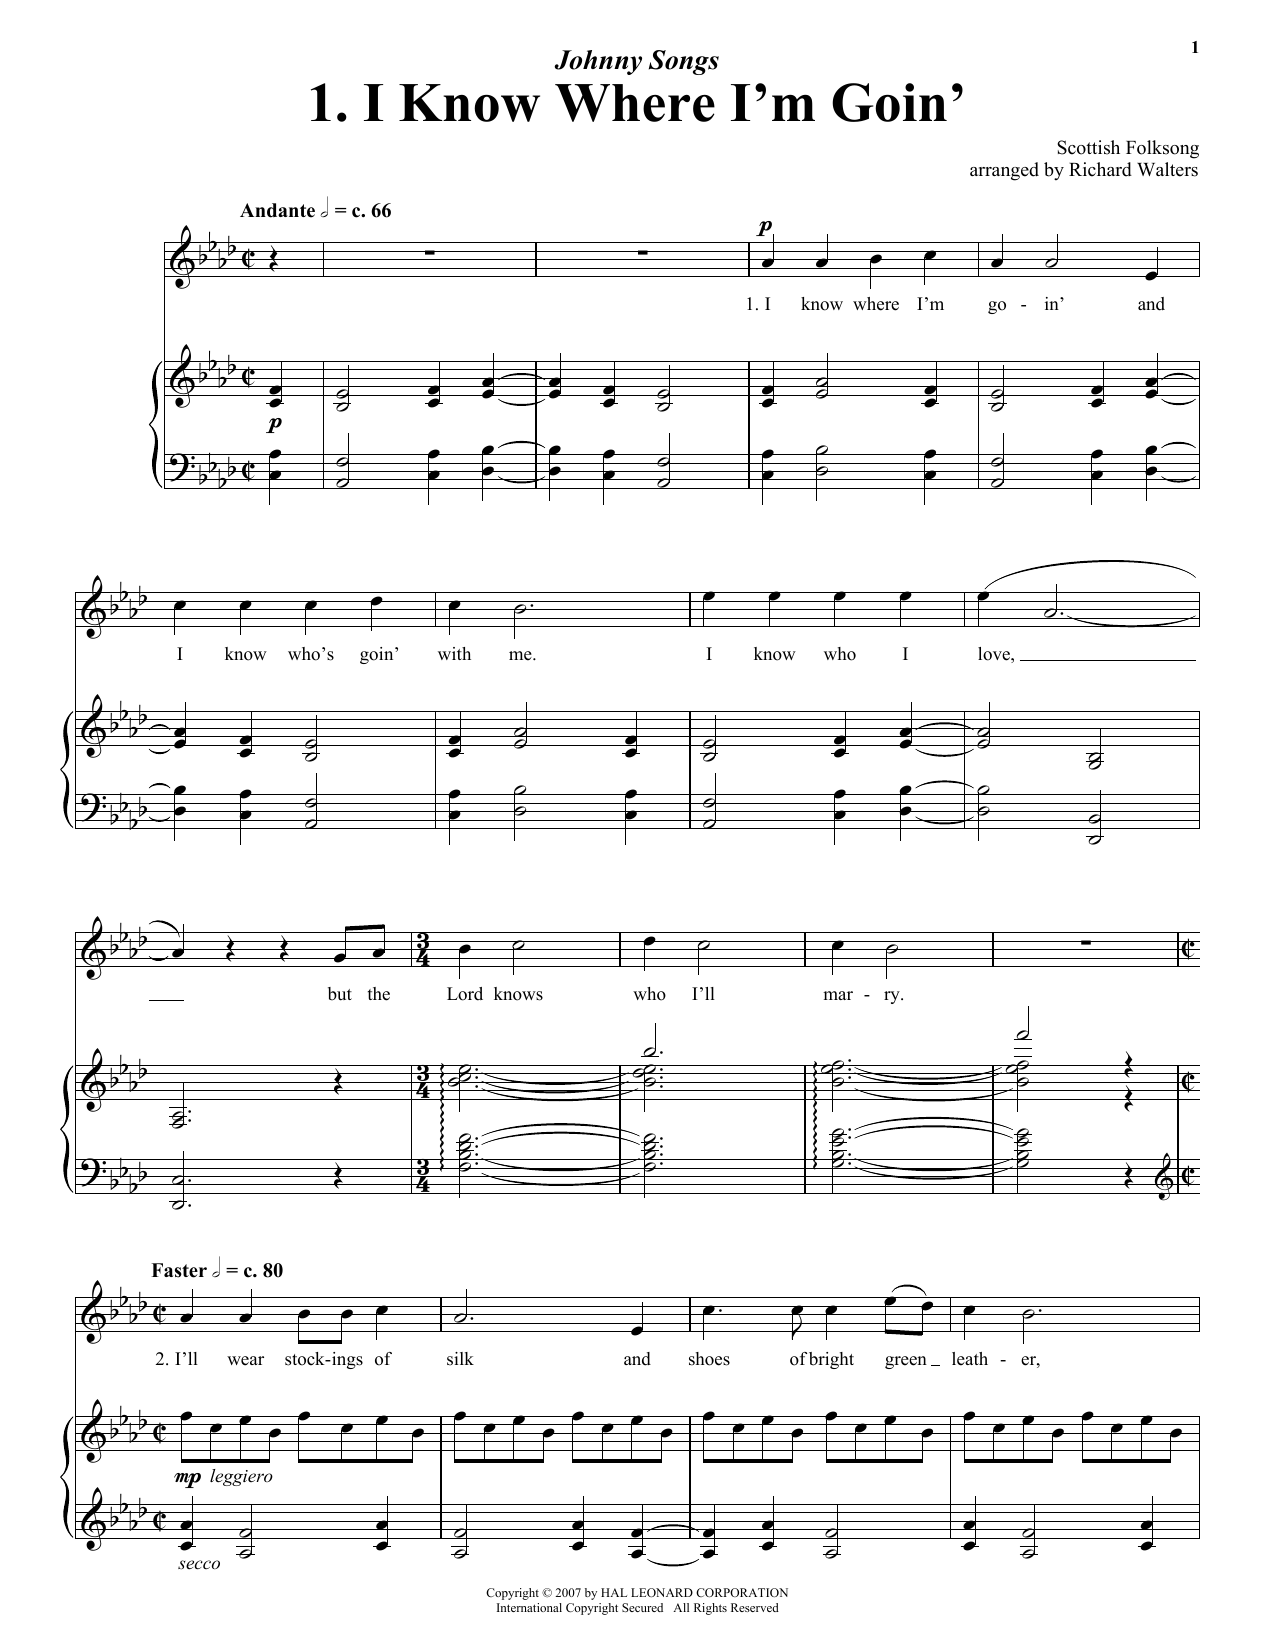 I Know Where I'm Goin' Sheet Music